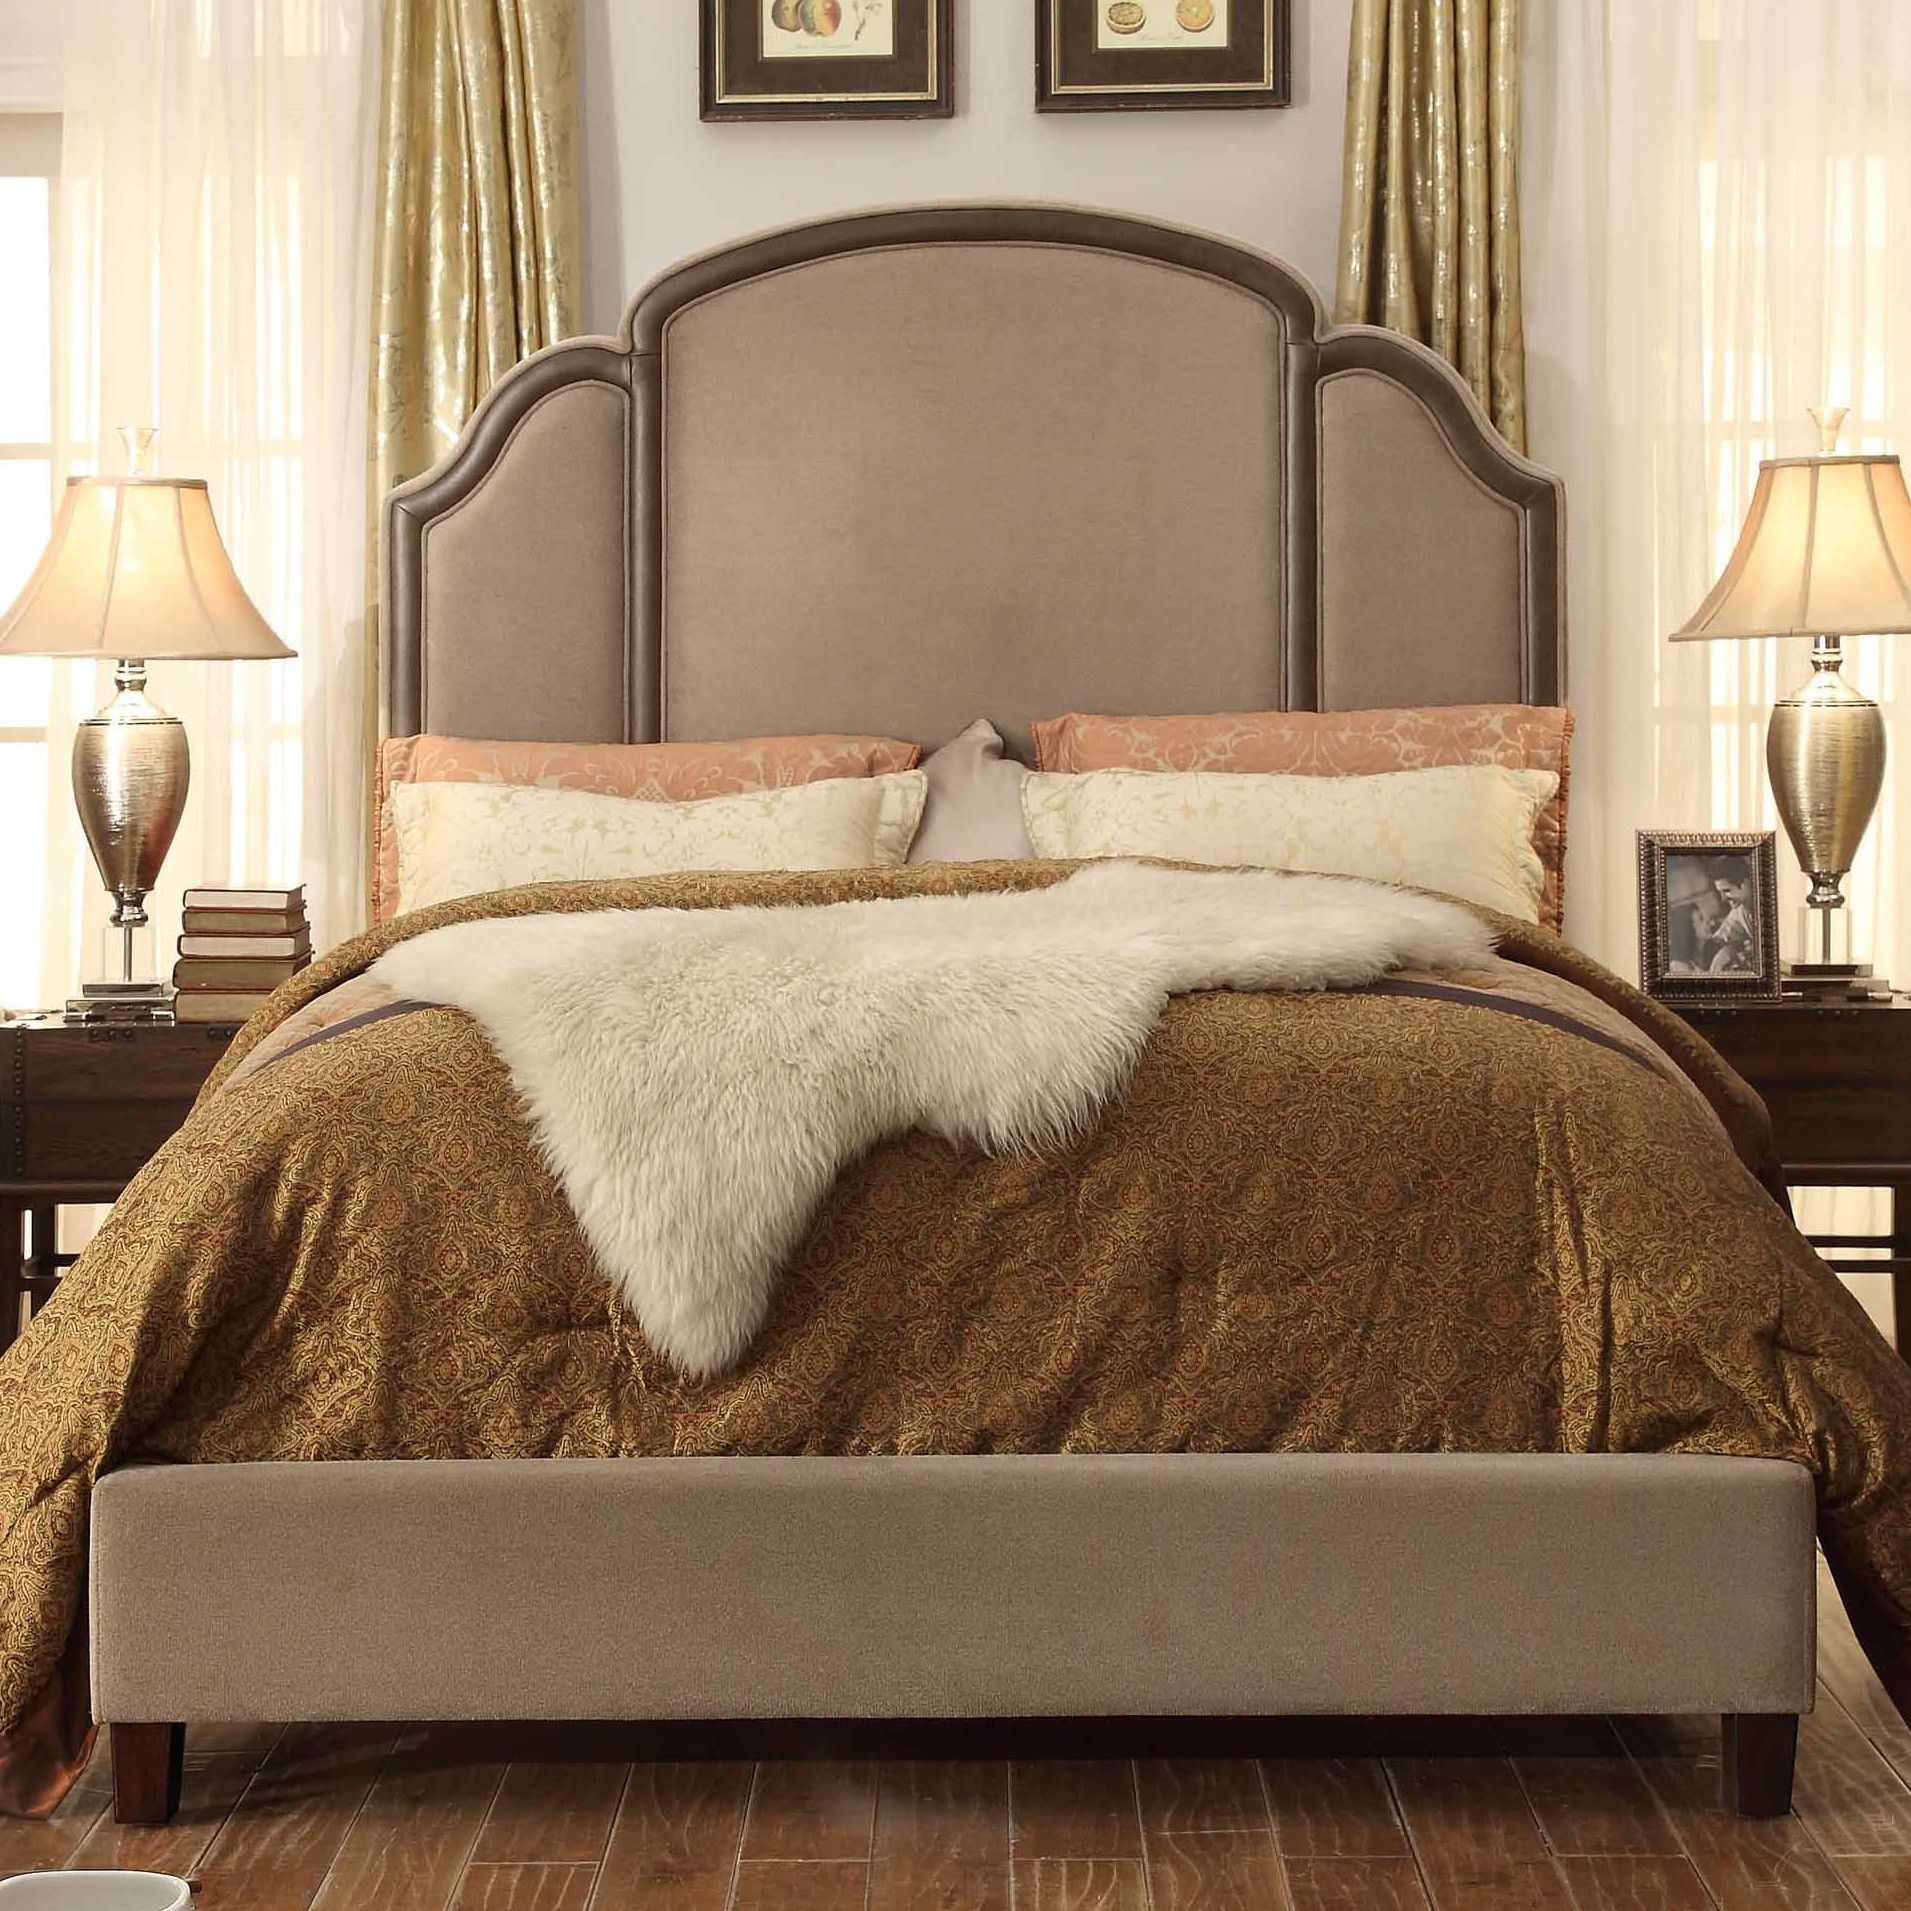 Ricca Queen Upholstered Platform Bed | Products | Pinterest | Betten ...